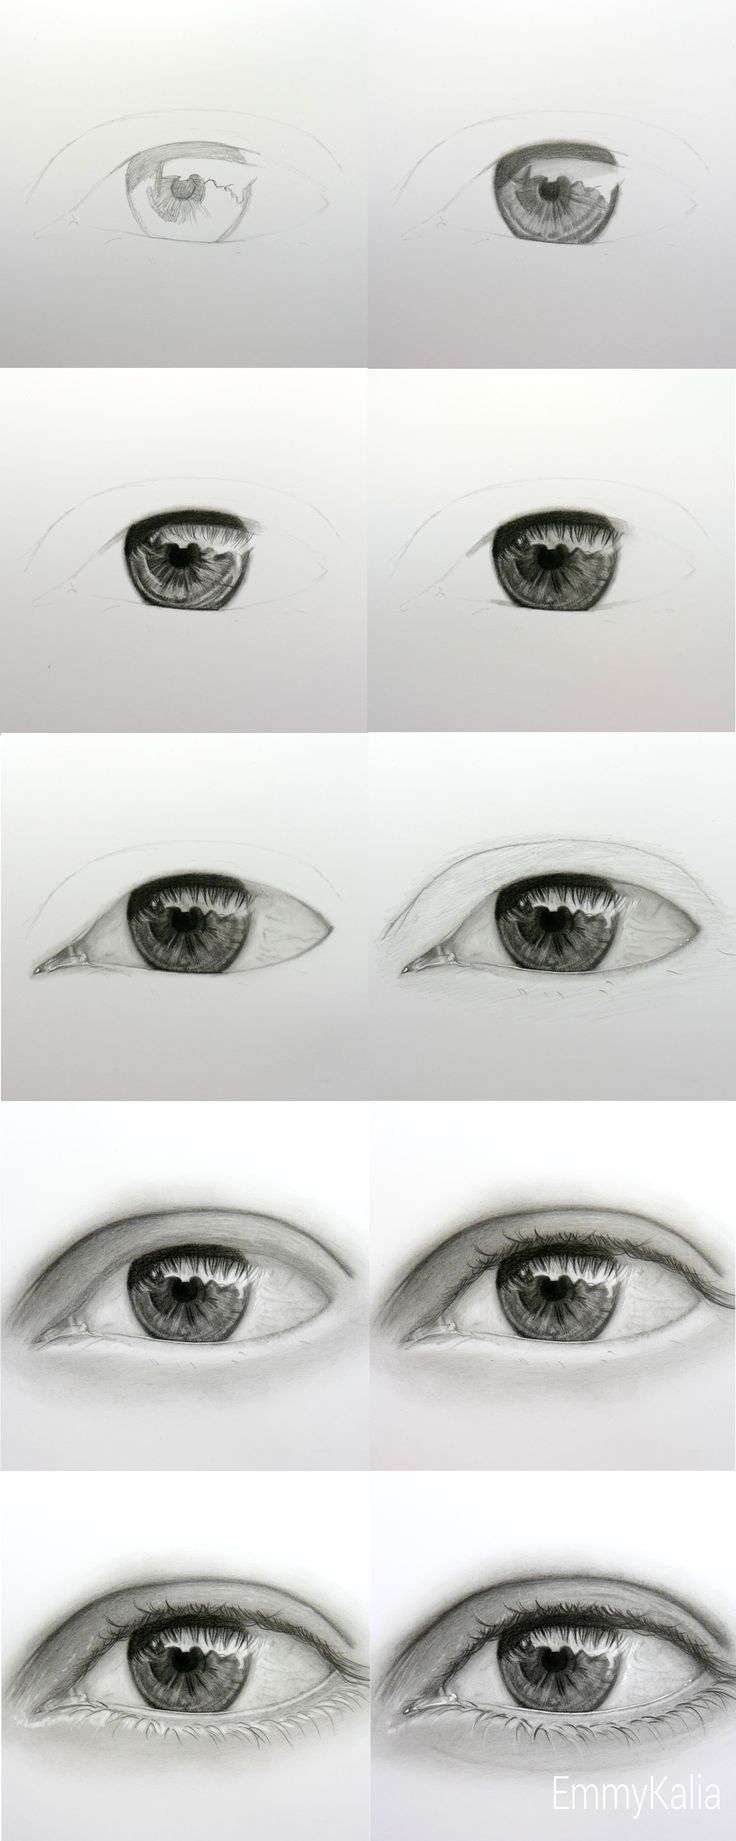 How To Draw A Realistic Eye Step By Step Video